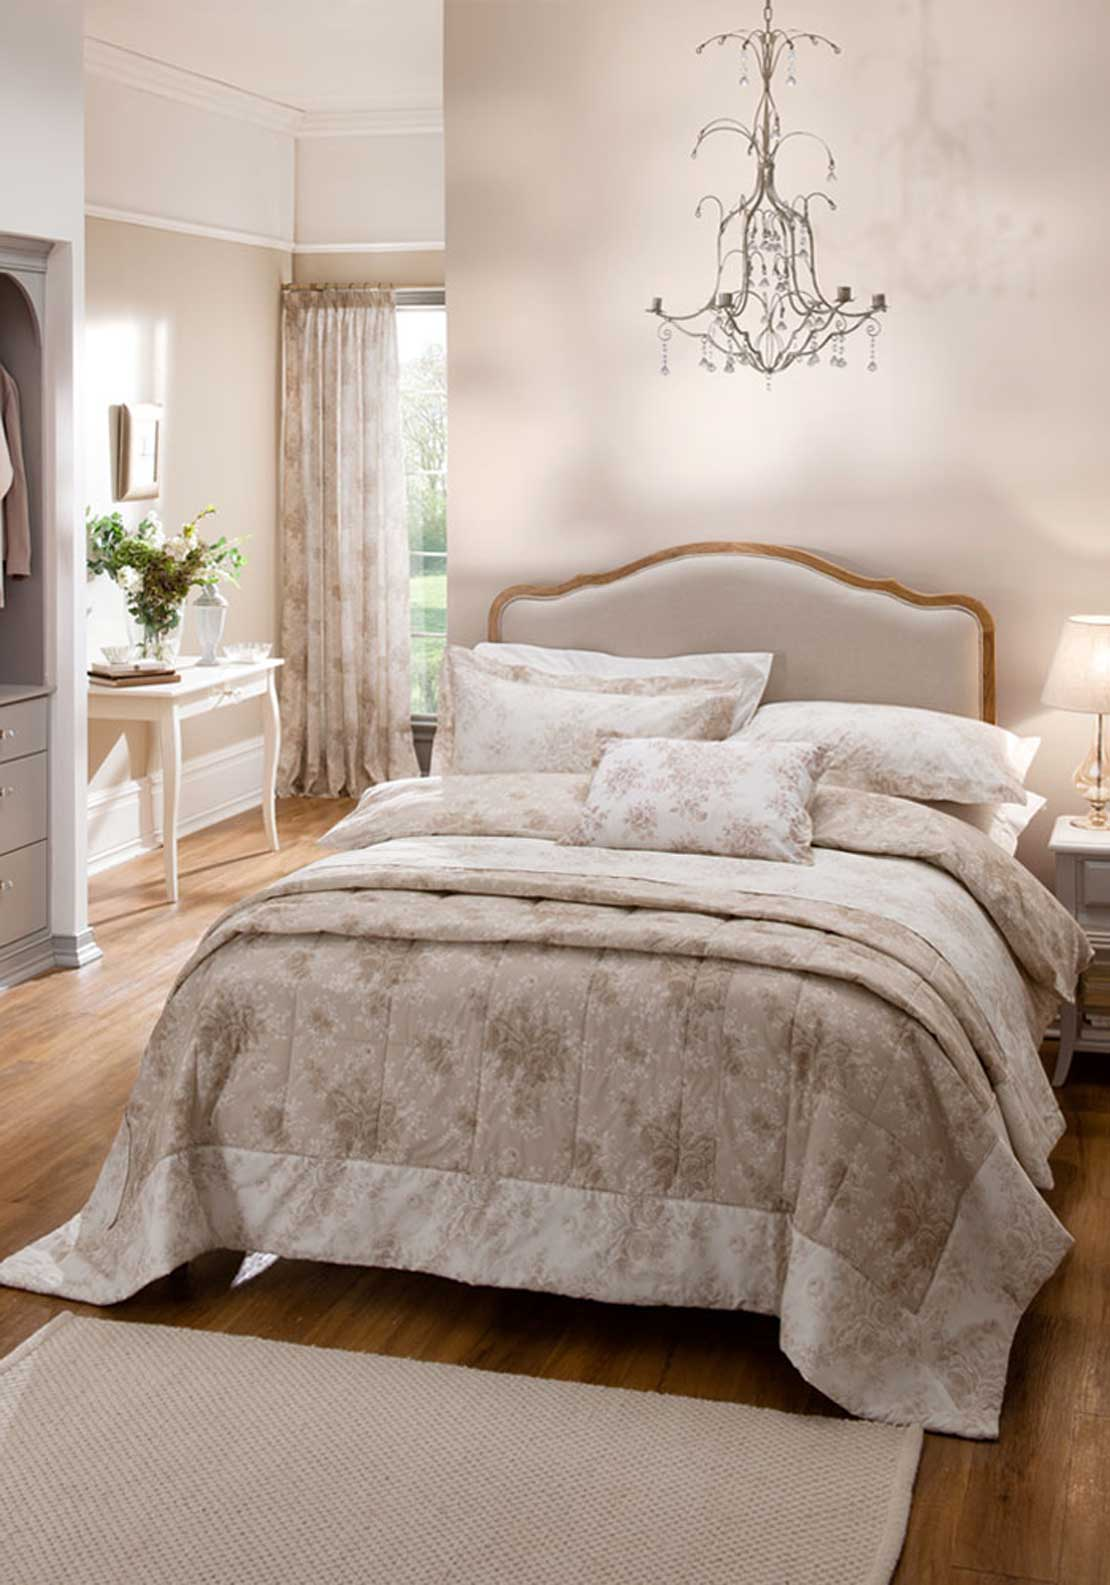 Dorma Rose Toile Quilted Bedspread 245 x 265cm, Natural